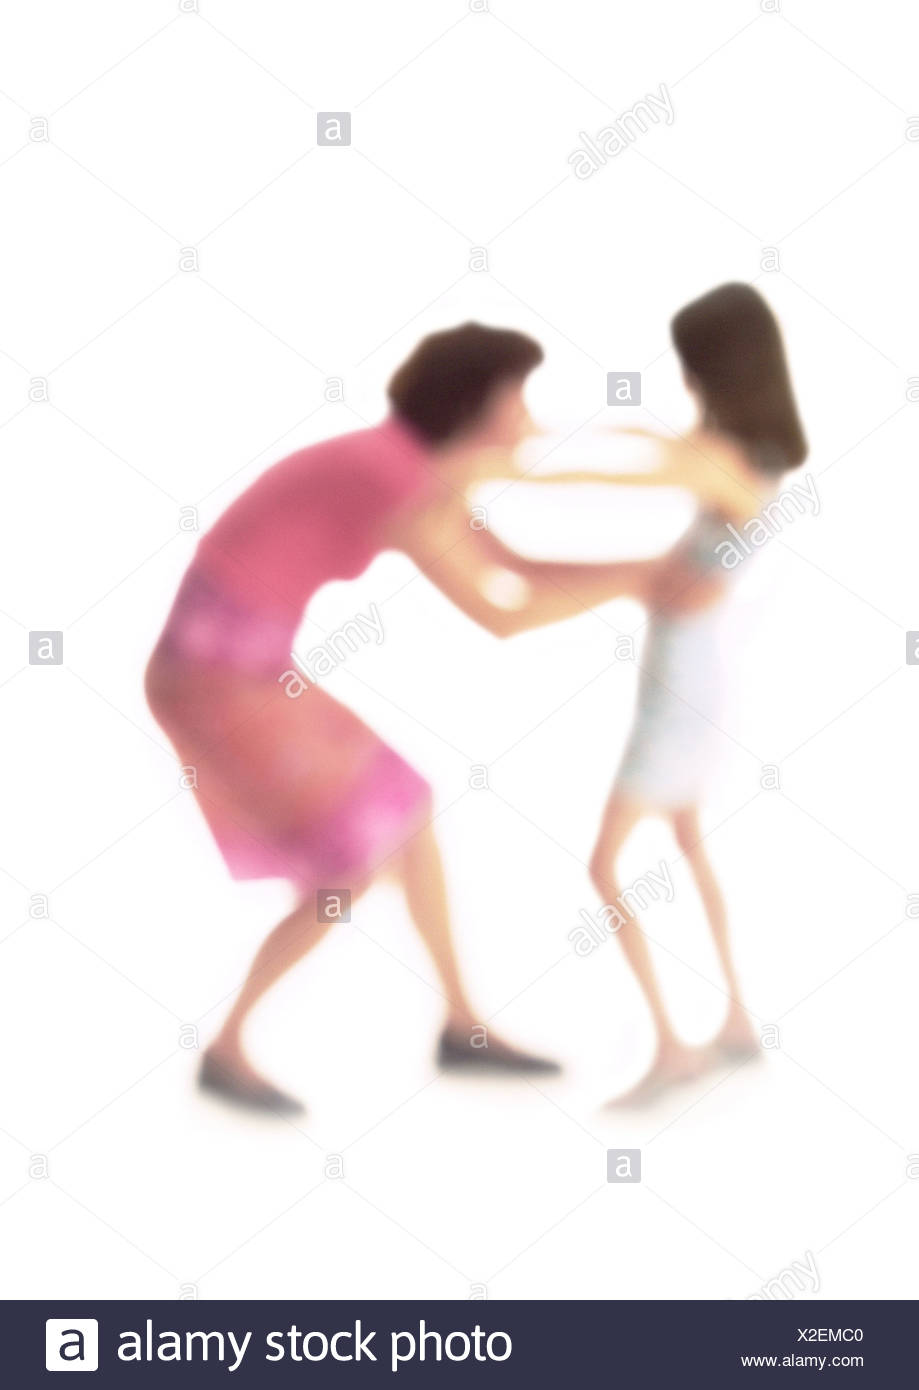 Silhouette of mother and daughter about to hug, on white background, defocused Stock Photo